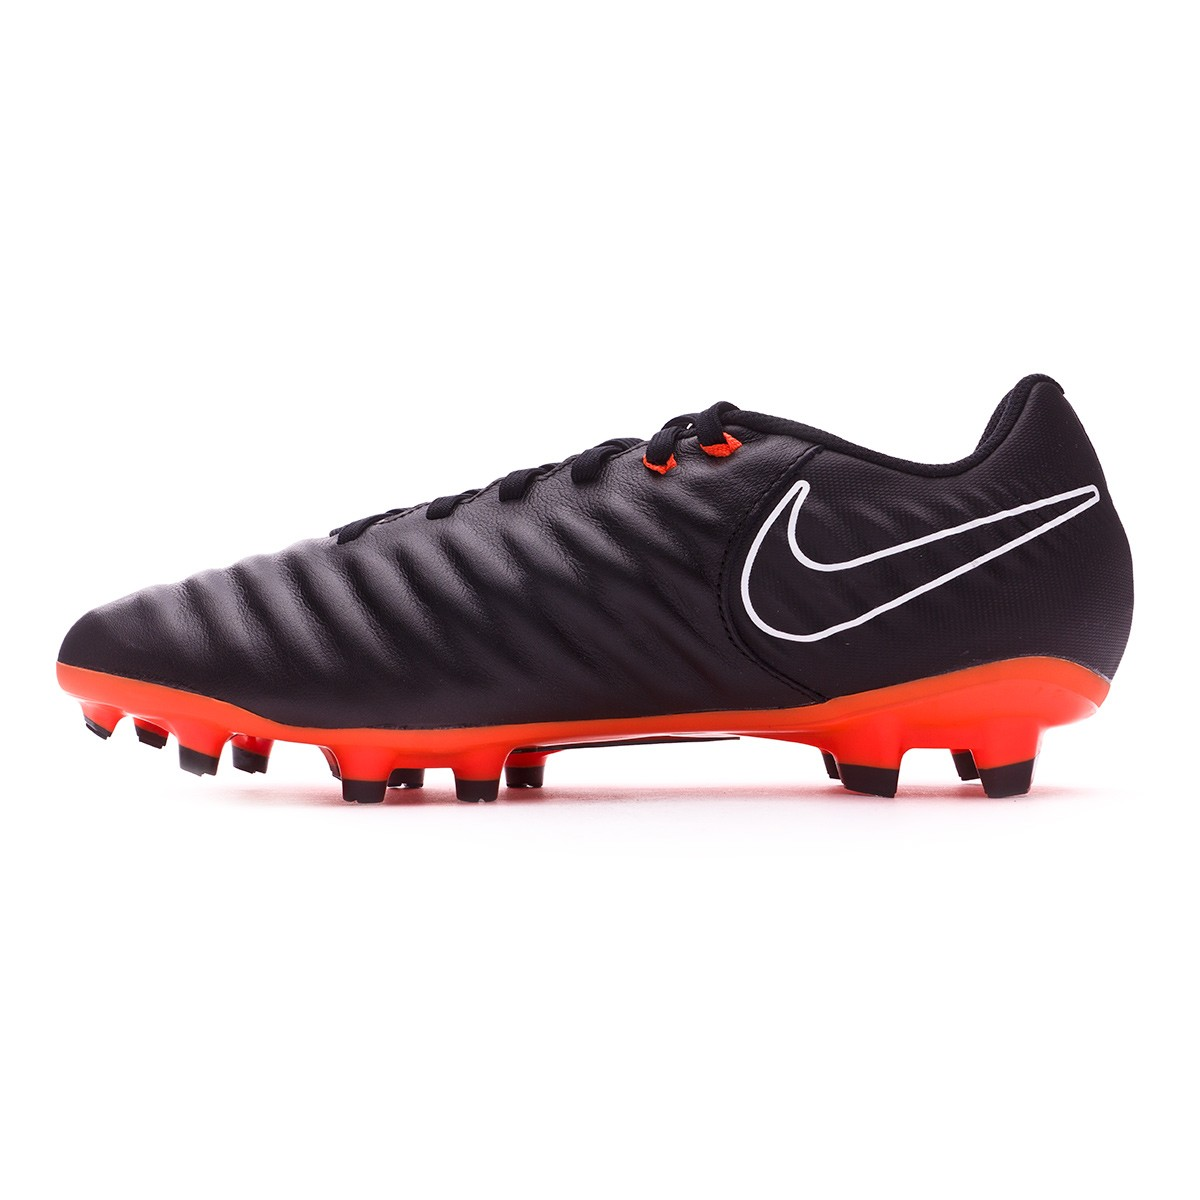 info for 7c2a8 2c8de Football Boots Nike Tiempo Legend VII Academy FG Black-Total orange-White -  Tienda de fútbol Fútbol Emotion